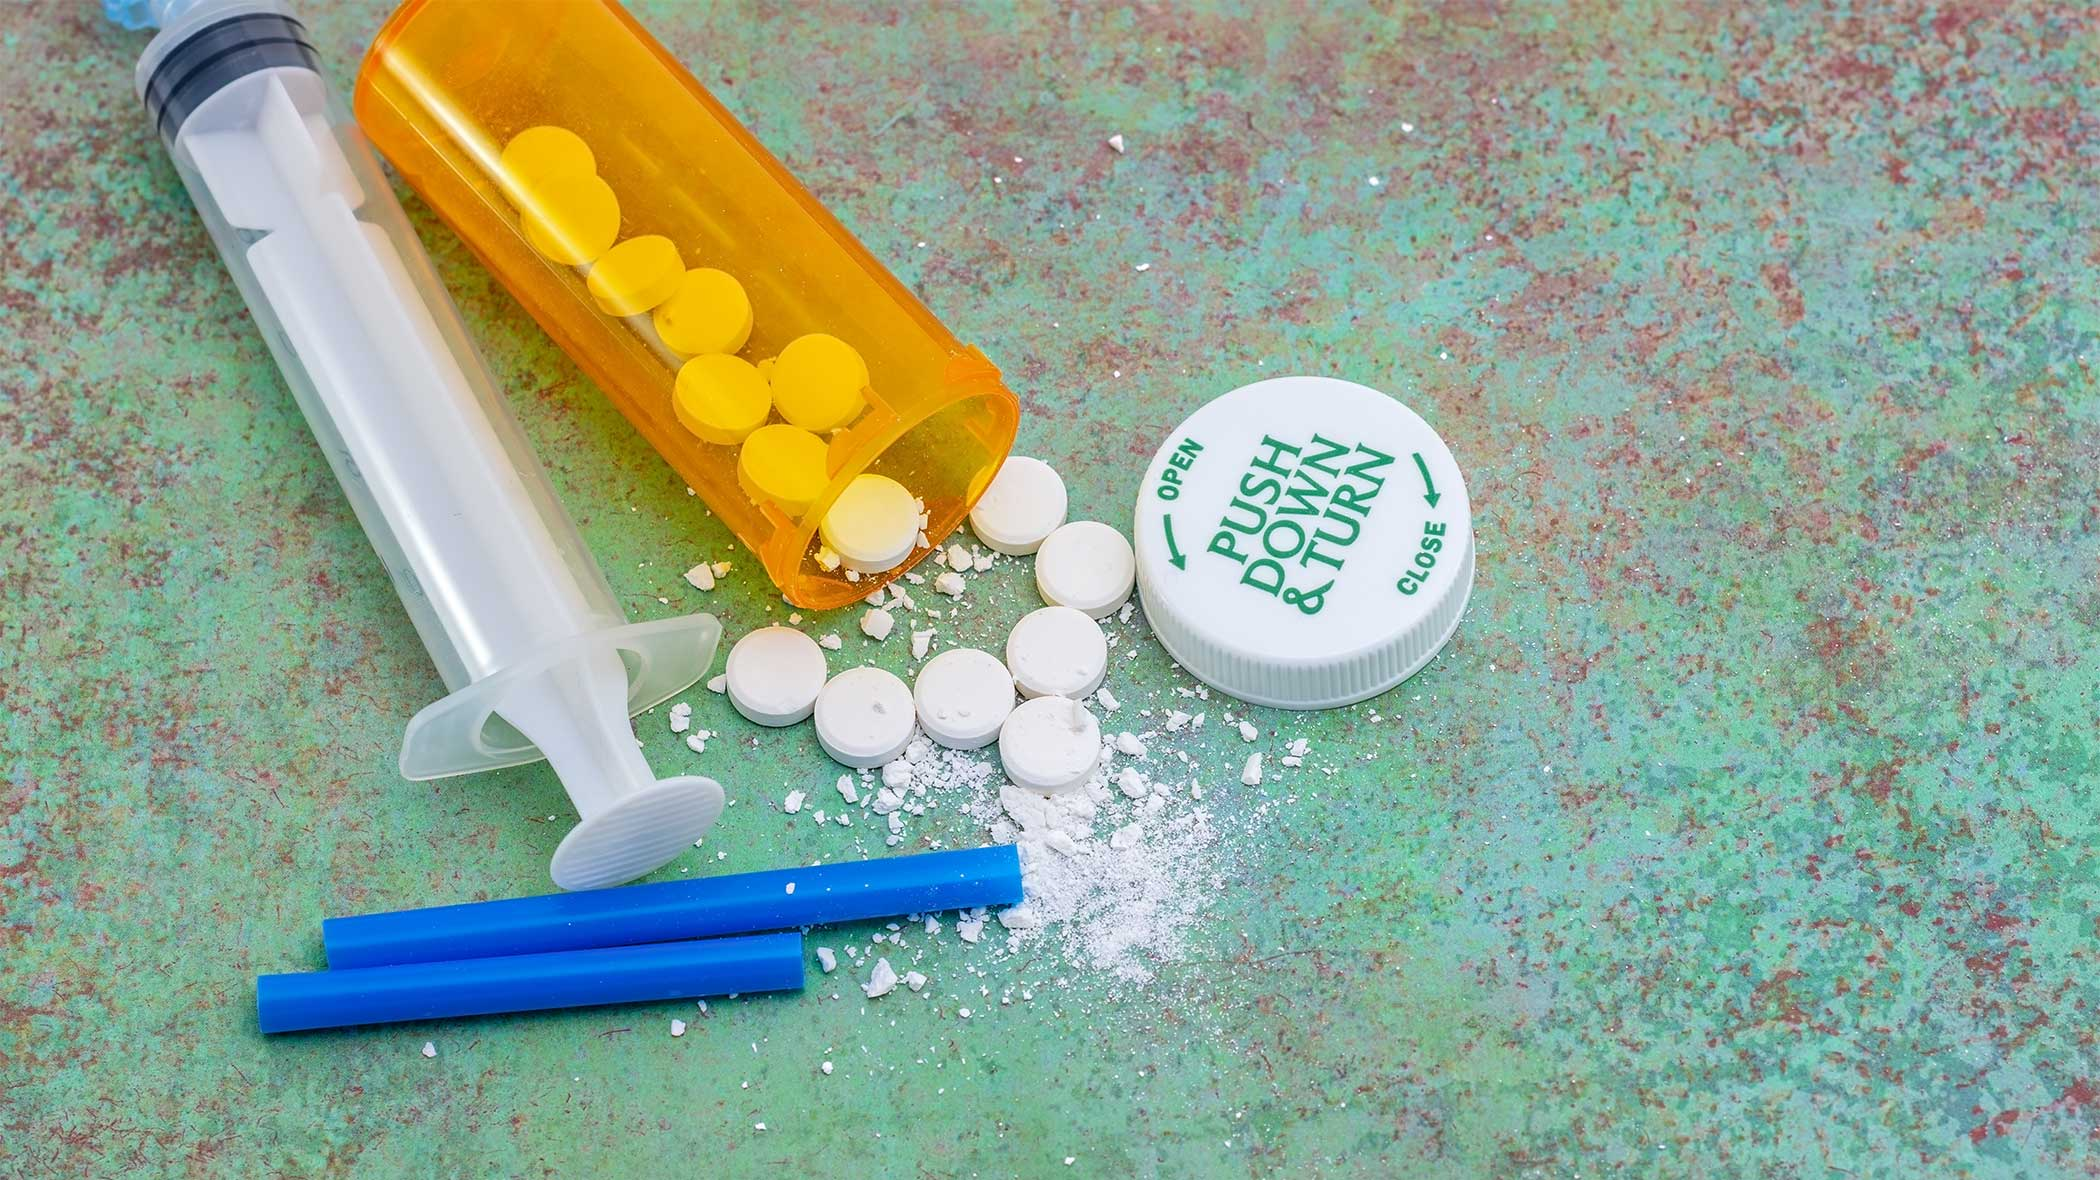 What Method Of Administration Is Typically Used With Opioids?